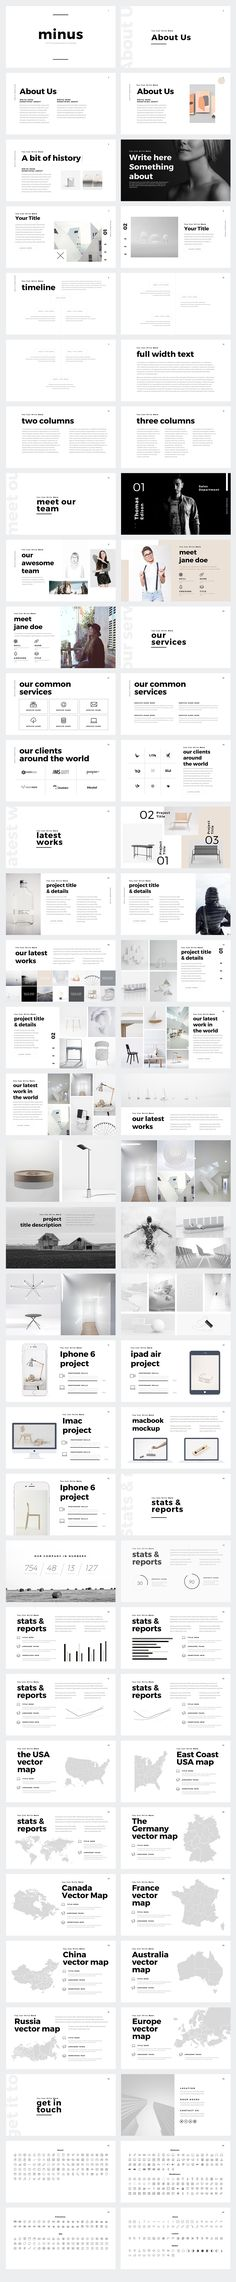 Minus Minimal Keynote Template by Slidedizer on @creativemarket